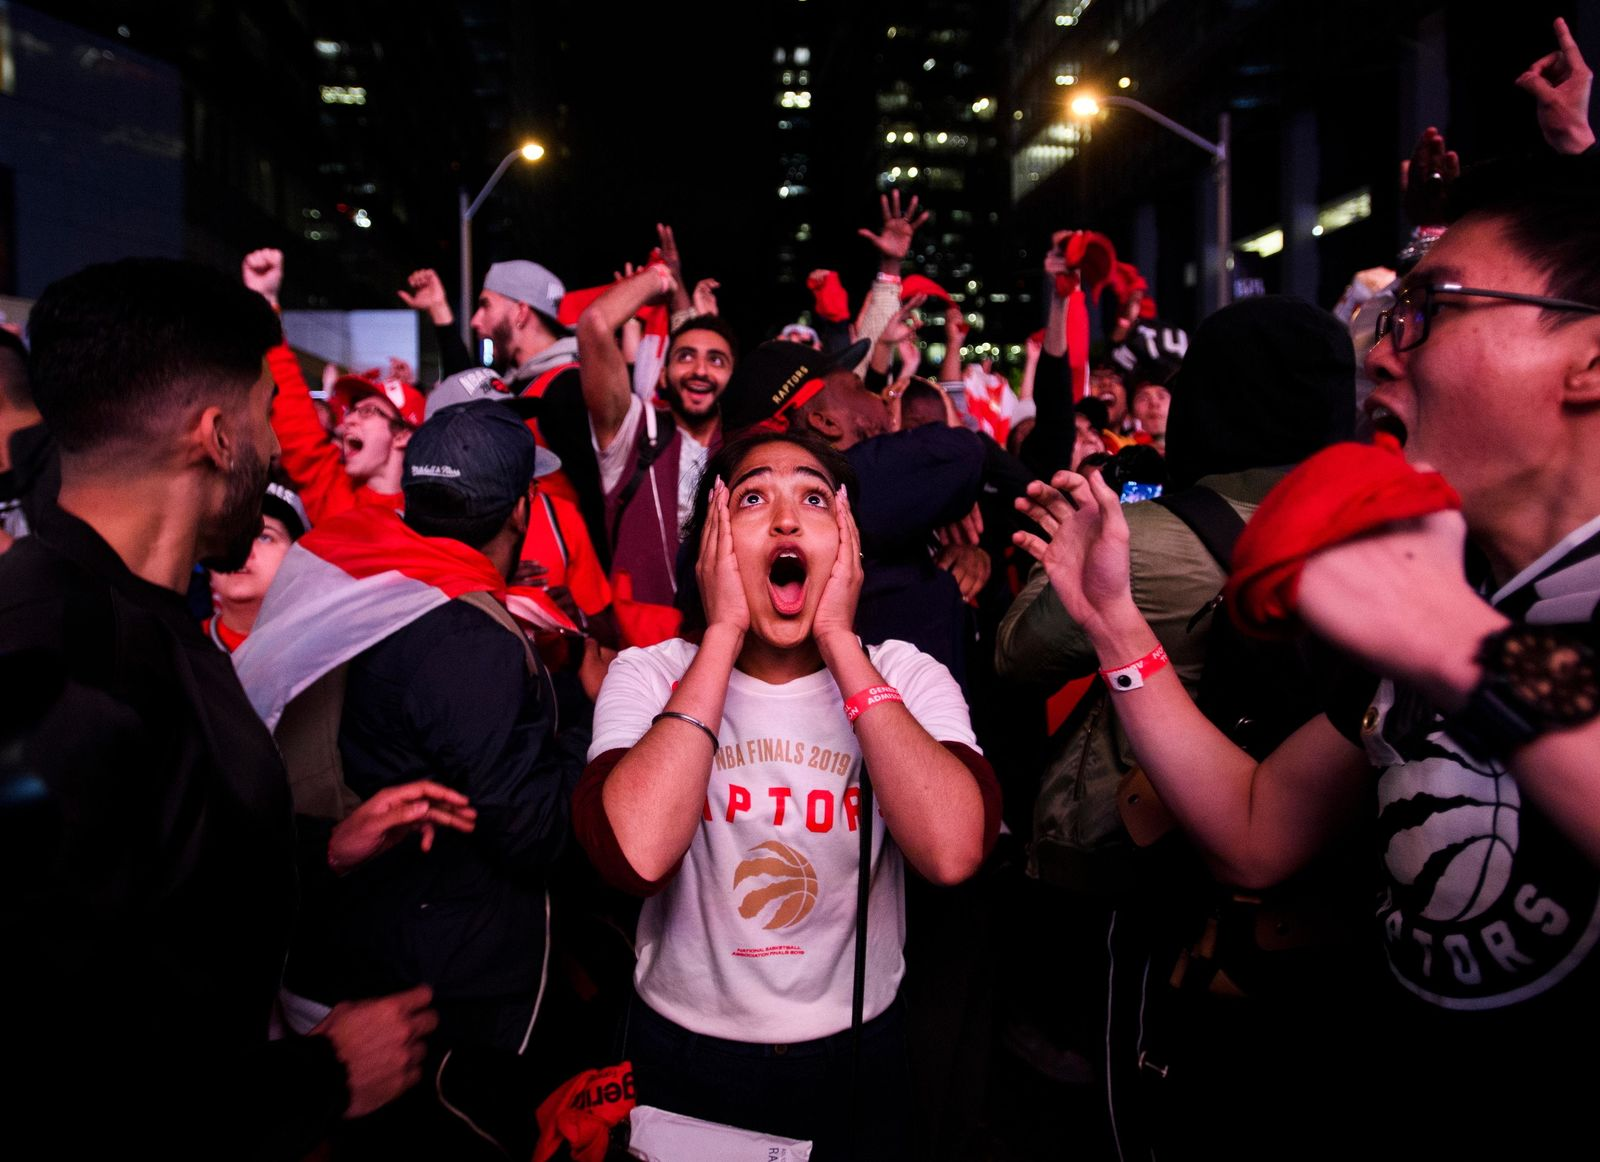 Fan reacts in Jurassic Park outside Scotiabank Arena in Toronto as the Toronto Raptors defeated the Golden State Warriors 114-110 in Game 6 of basketball's NBA Finals, Thursday, June 13, 2019, in Oakland, Calif. (Nathan Denette/The Canadian Press via AP)